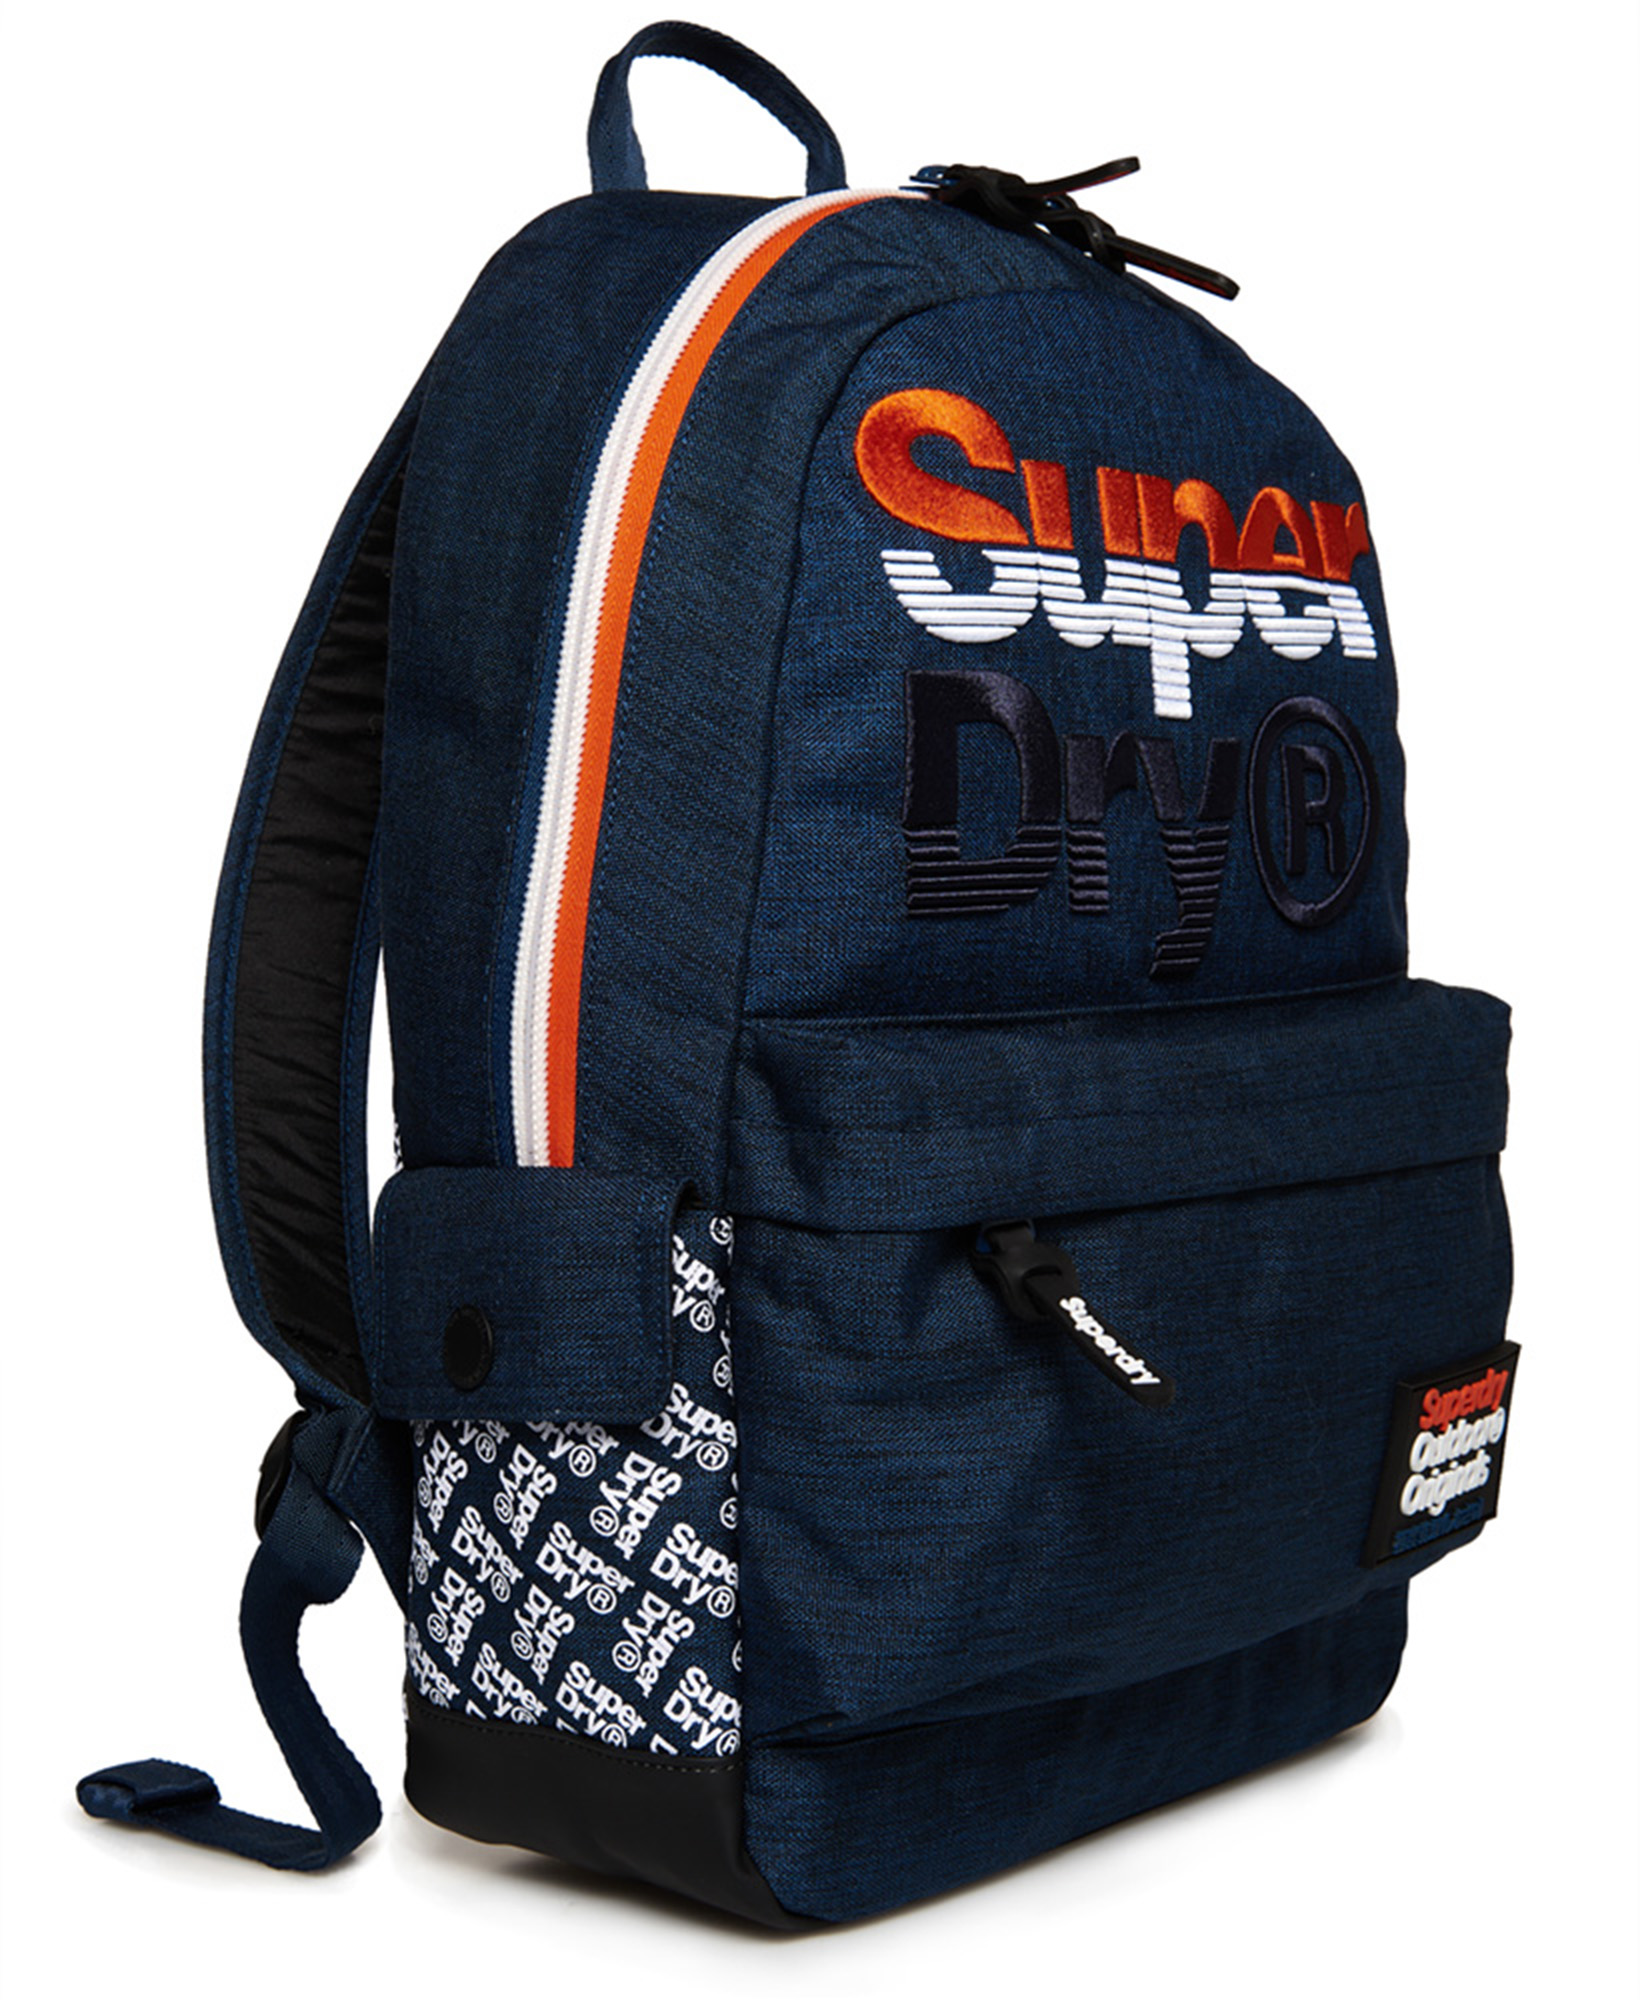 cd457b2a9ec Superdry Rucksack Navy Marl Blue Jackel Montana Backpack School ...